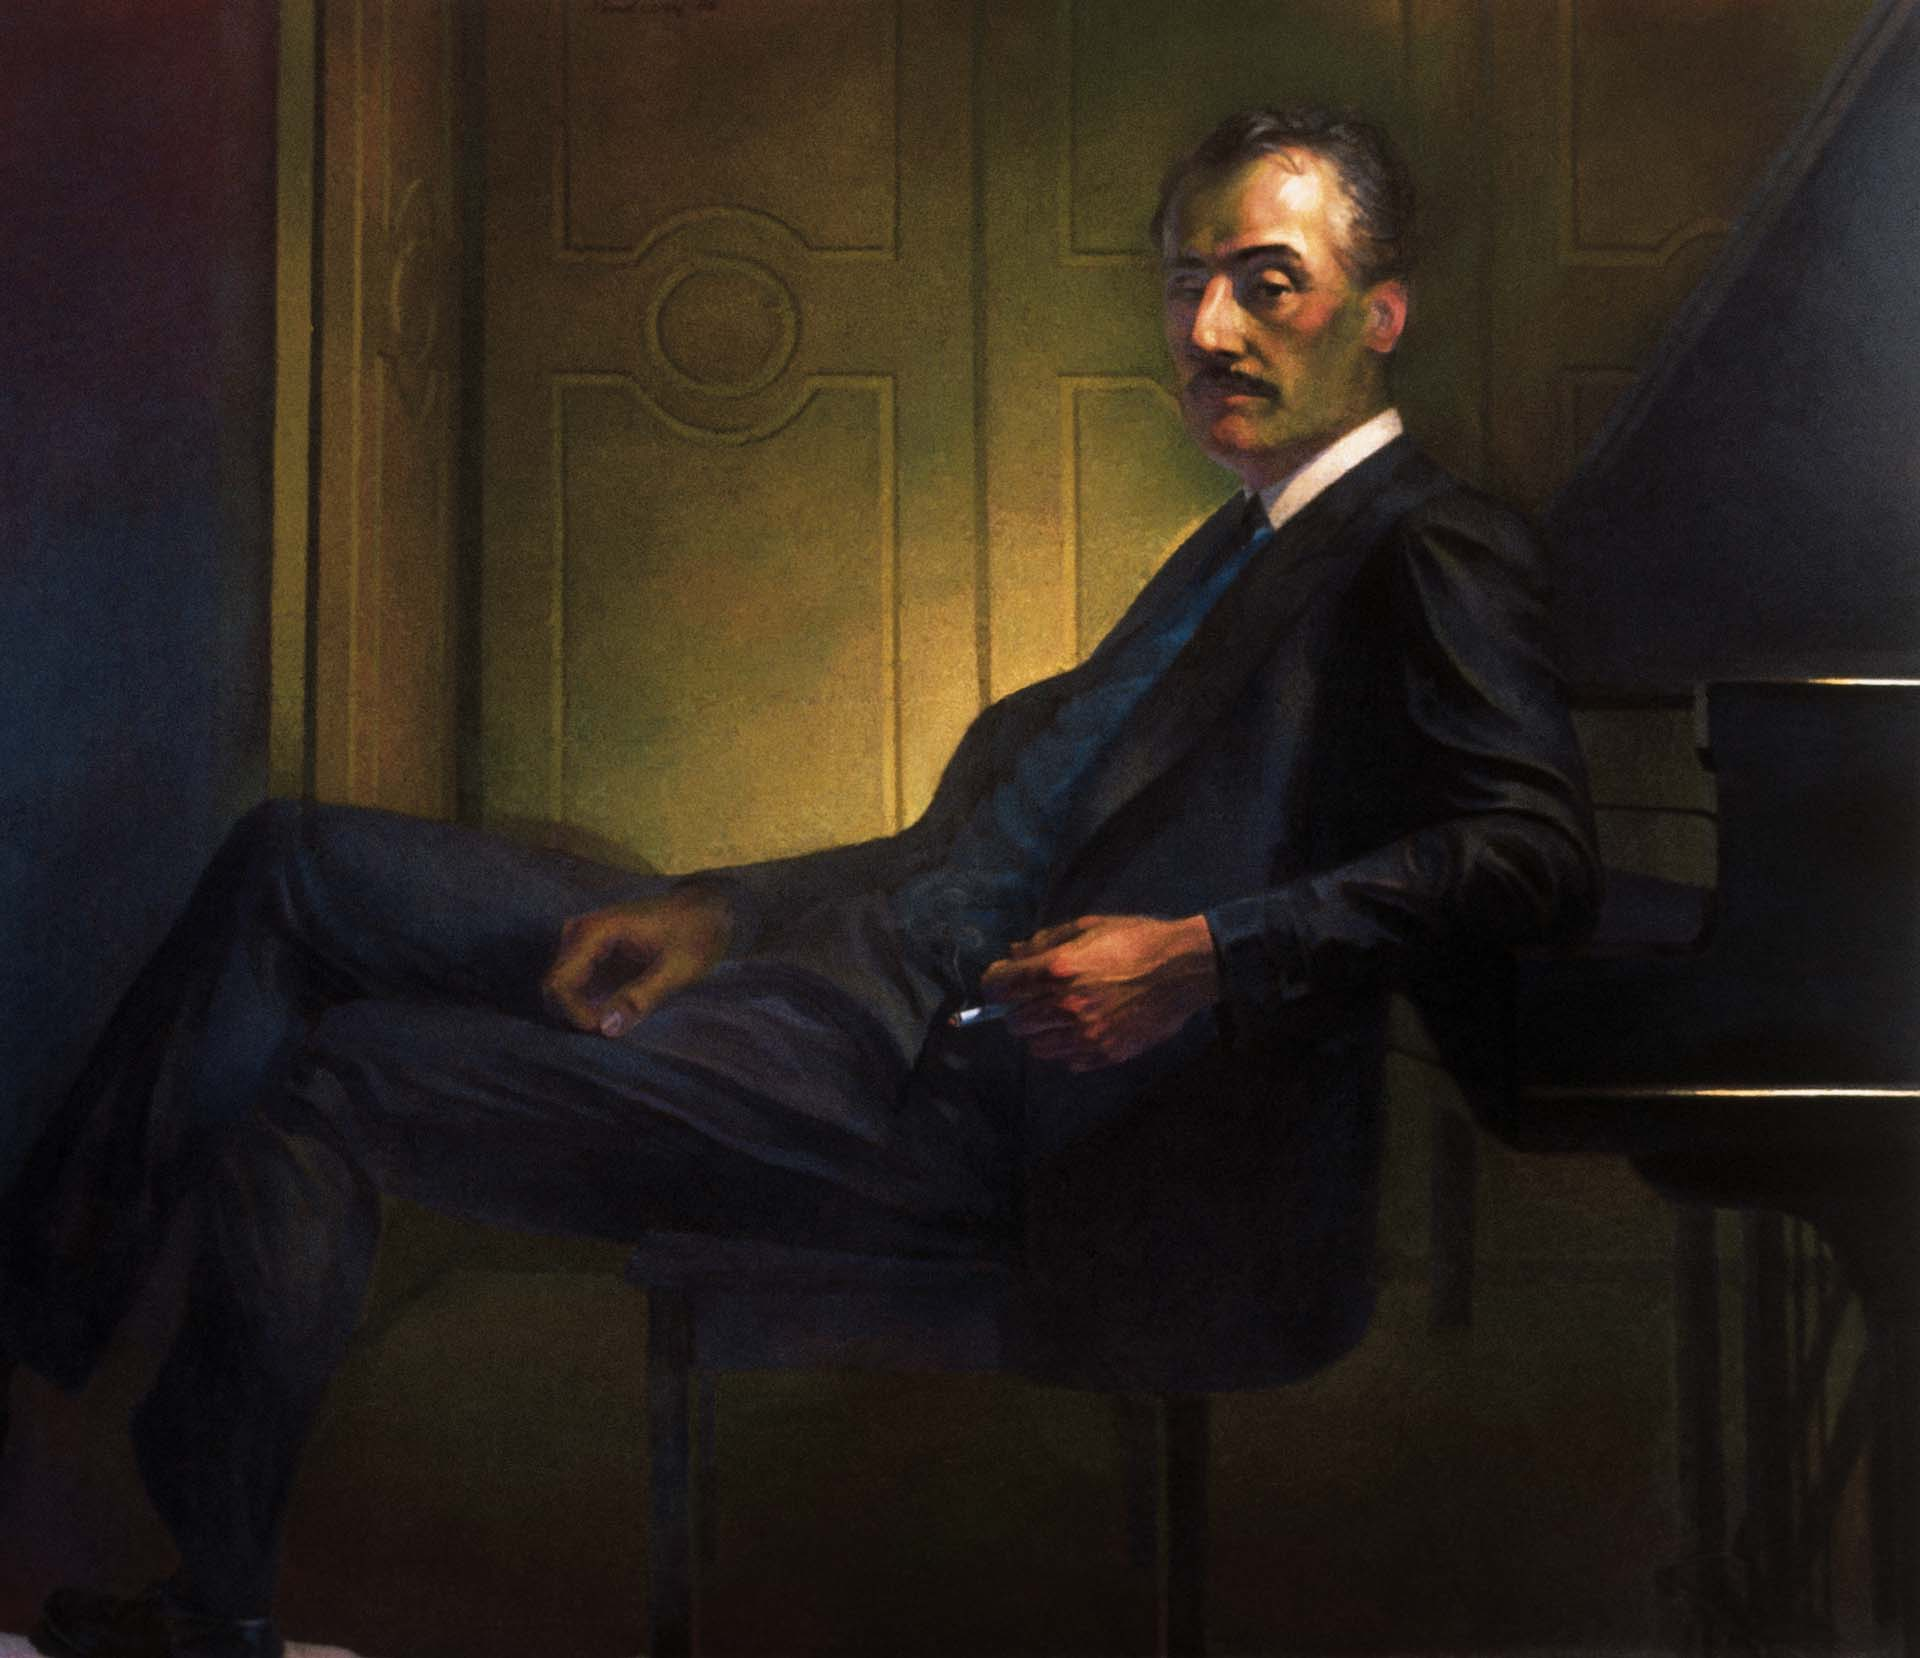 Newberry, Puccini, oil on linen, 60x70""